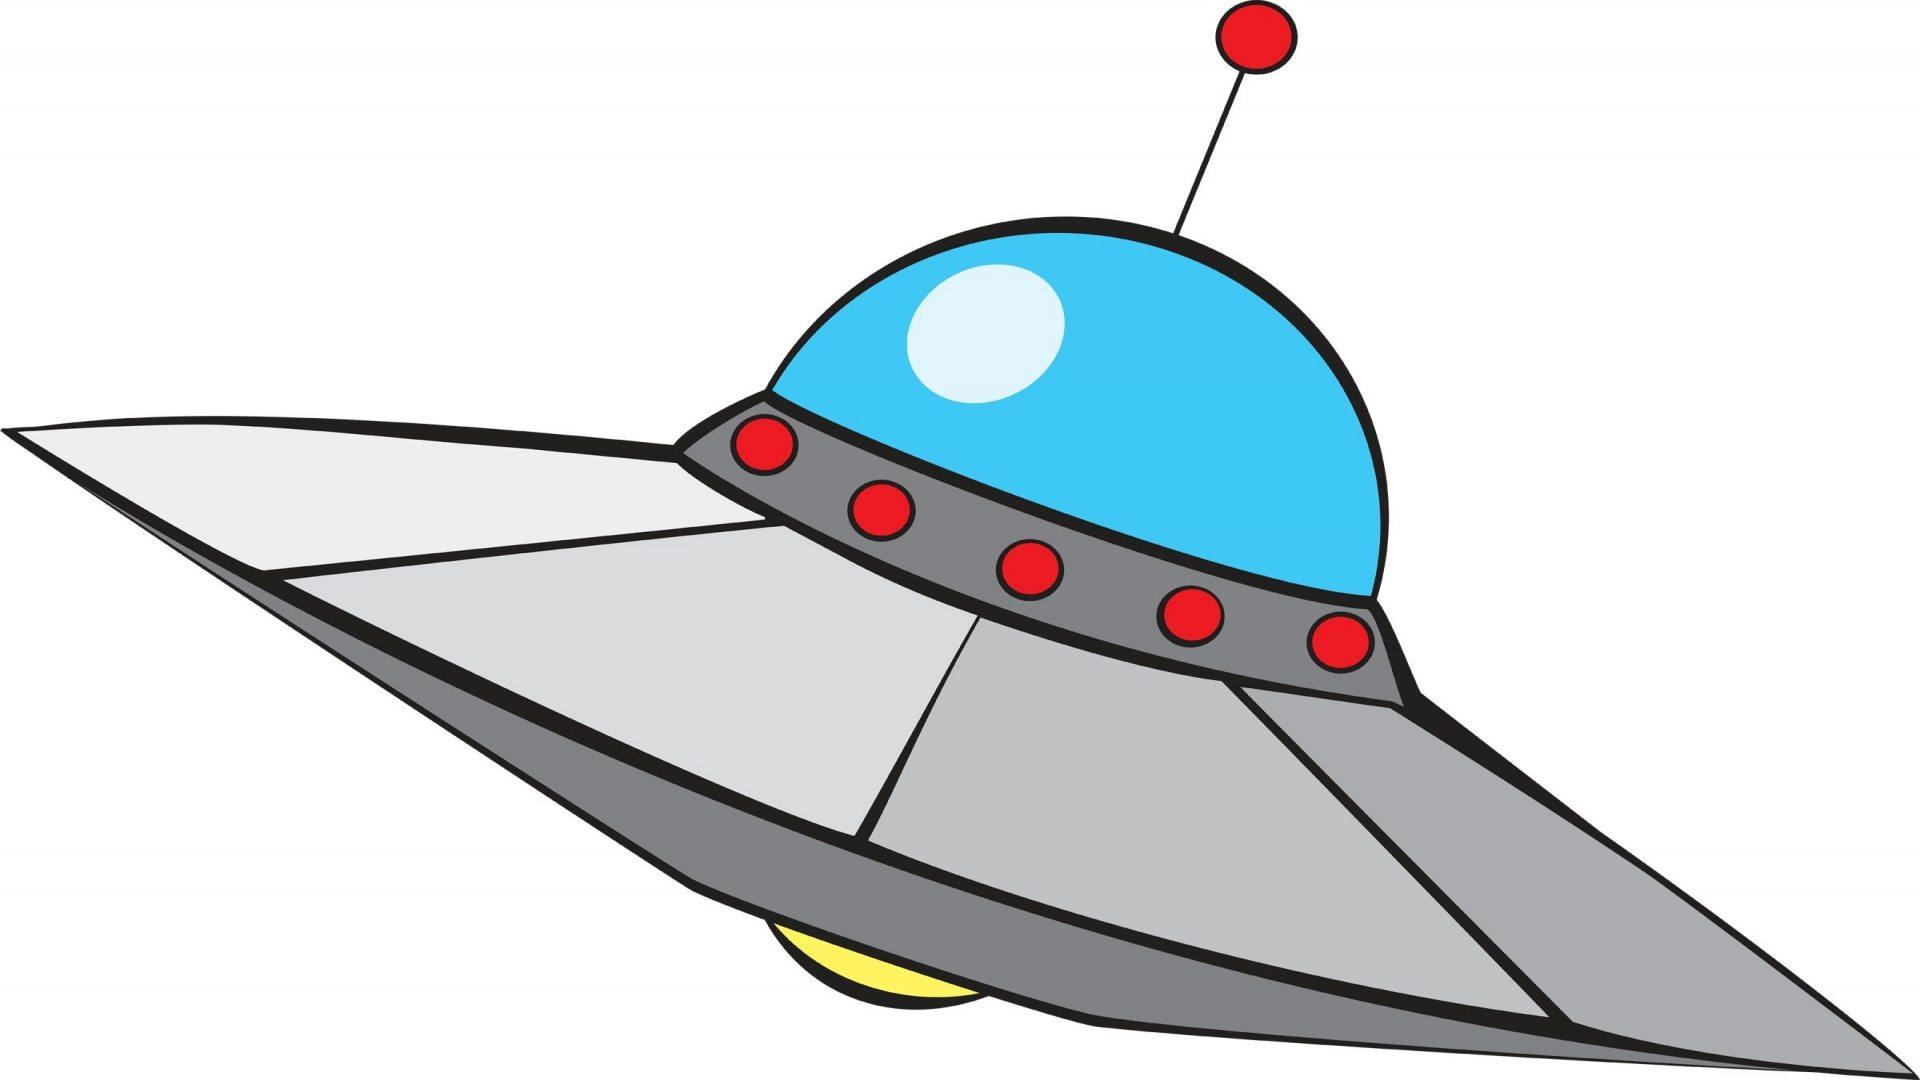 alien spaceship clipart at getdrawings com free for personal use rh getdrawings com spaceship earth clipart spaceship clipart animation